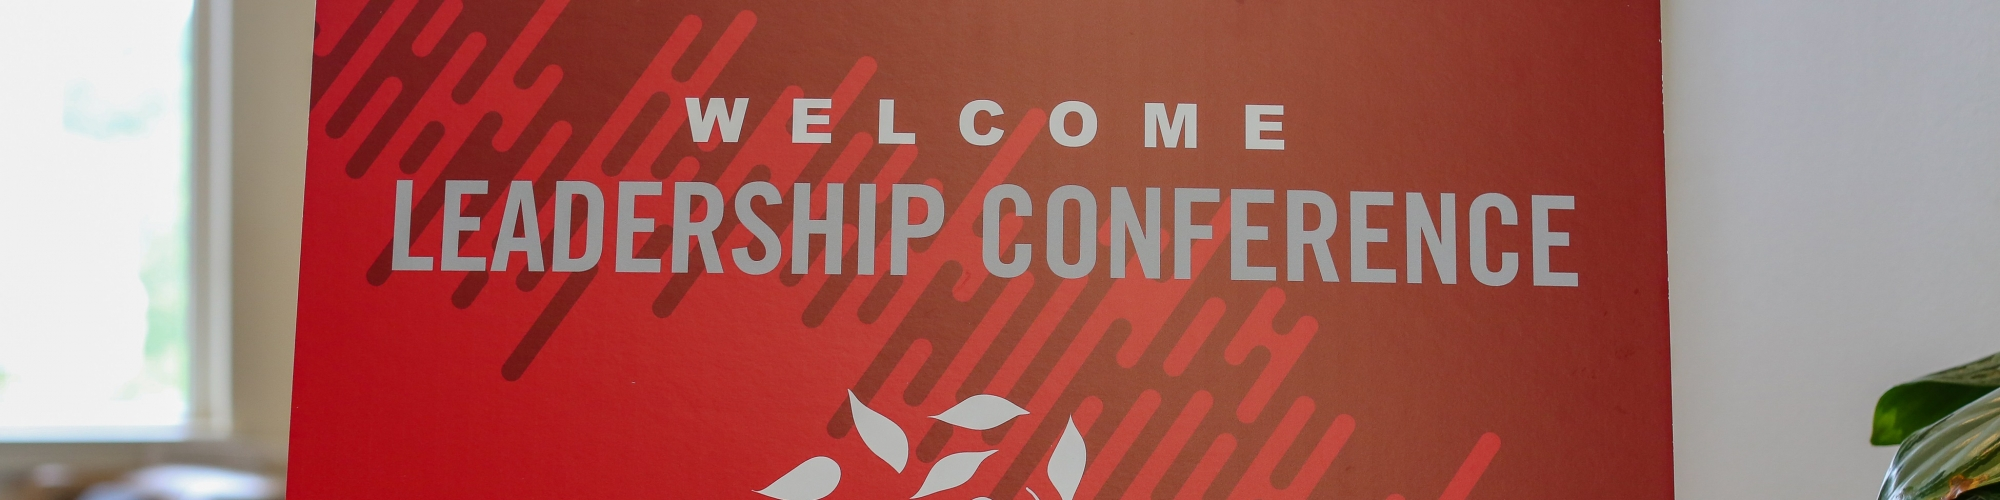 Leadership Conference Banner